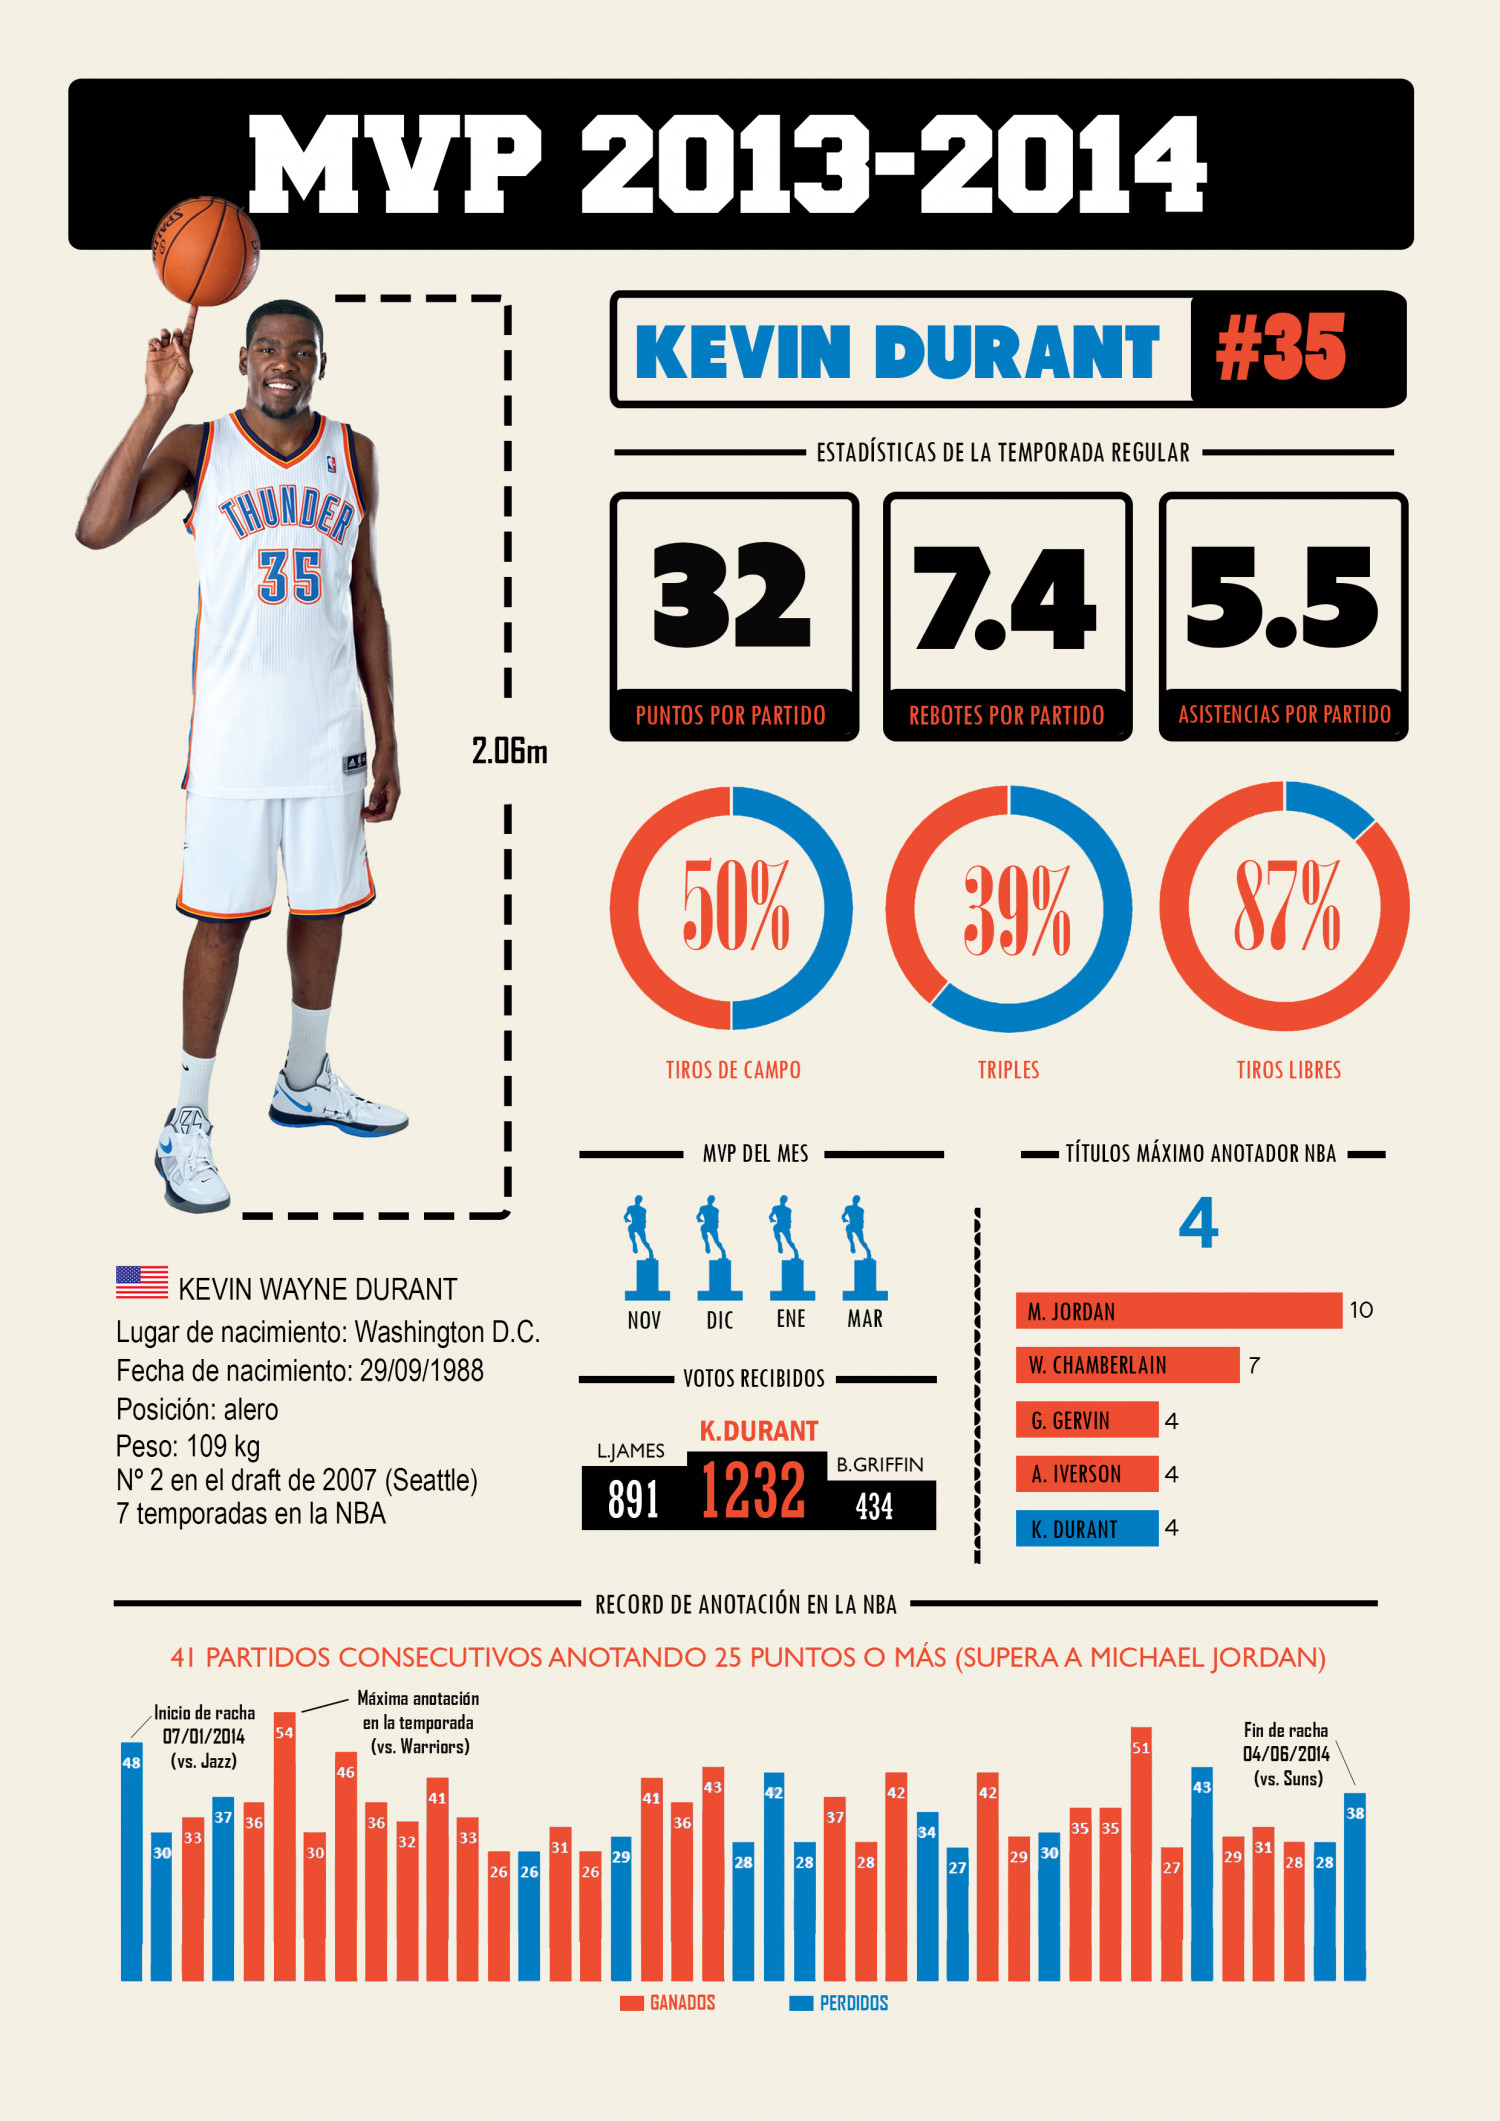 Kevin Durant MVP 2013-2014 Infographic